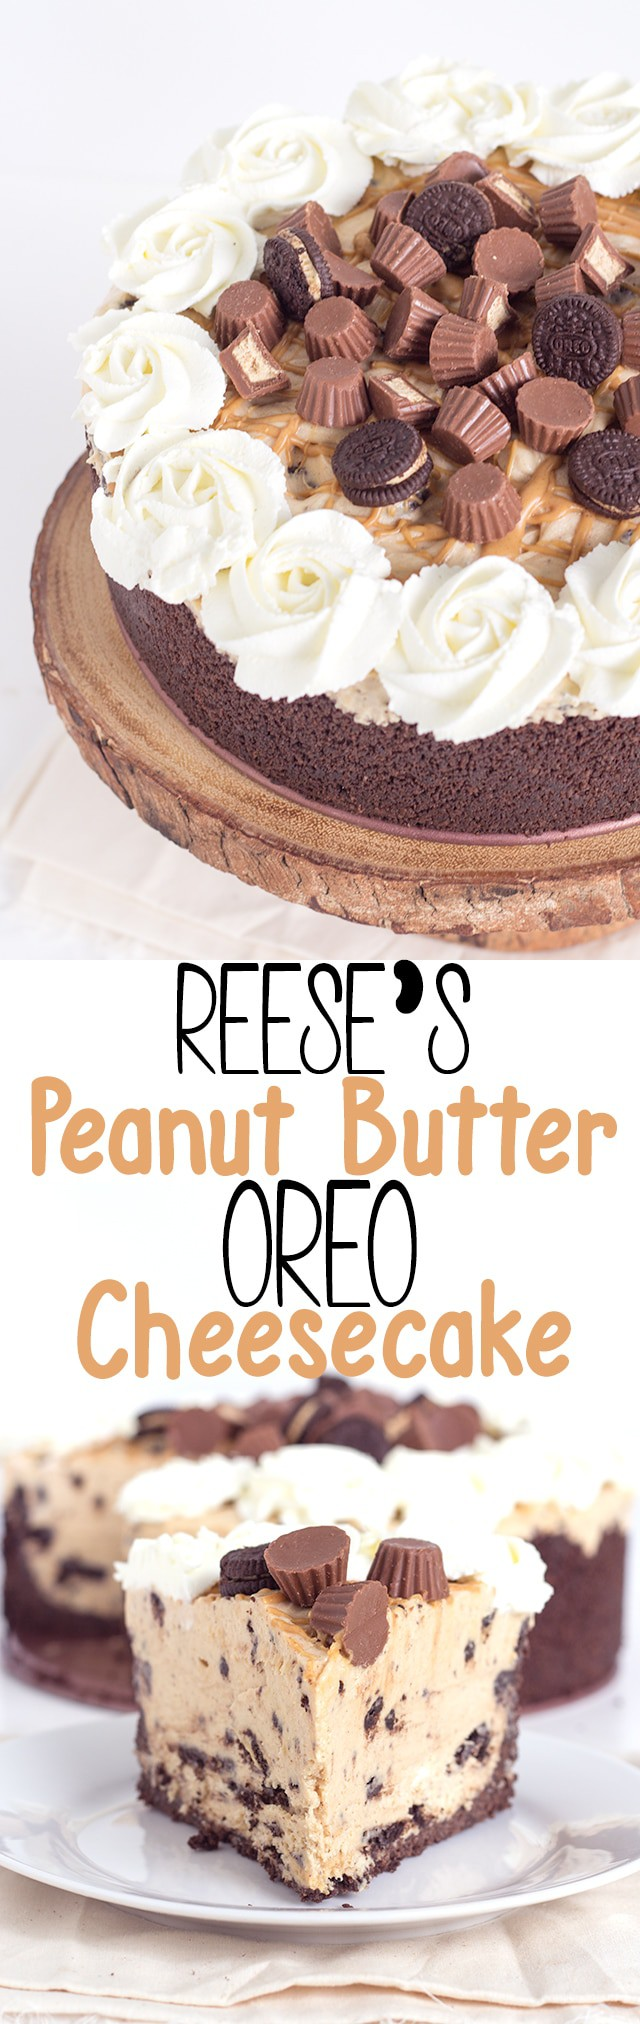 reeses-peanut-butter-oreo-cheesecake-PIN